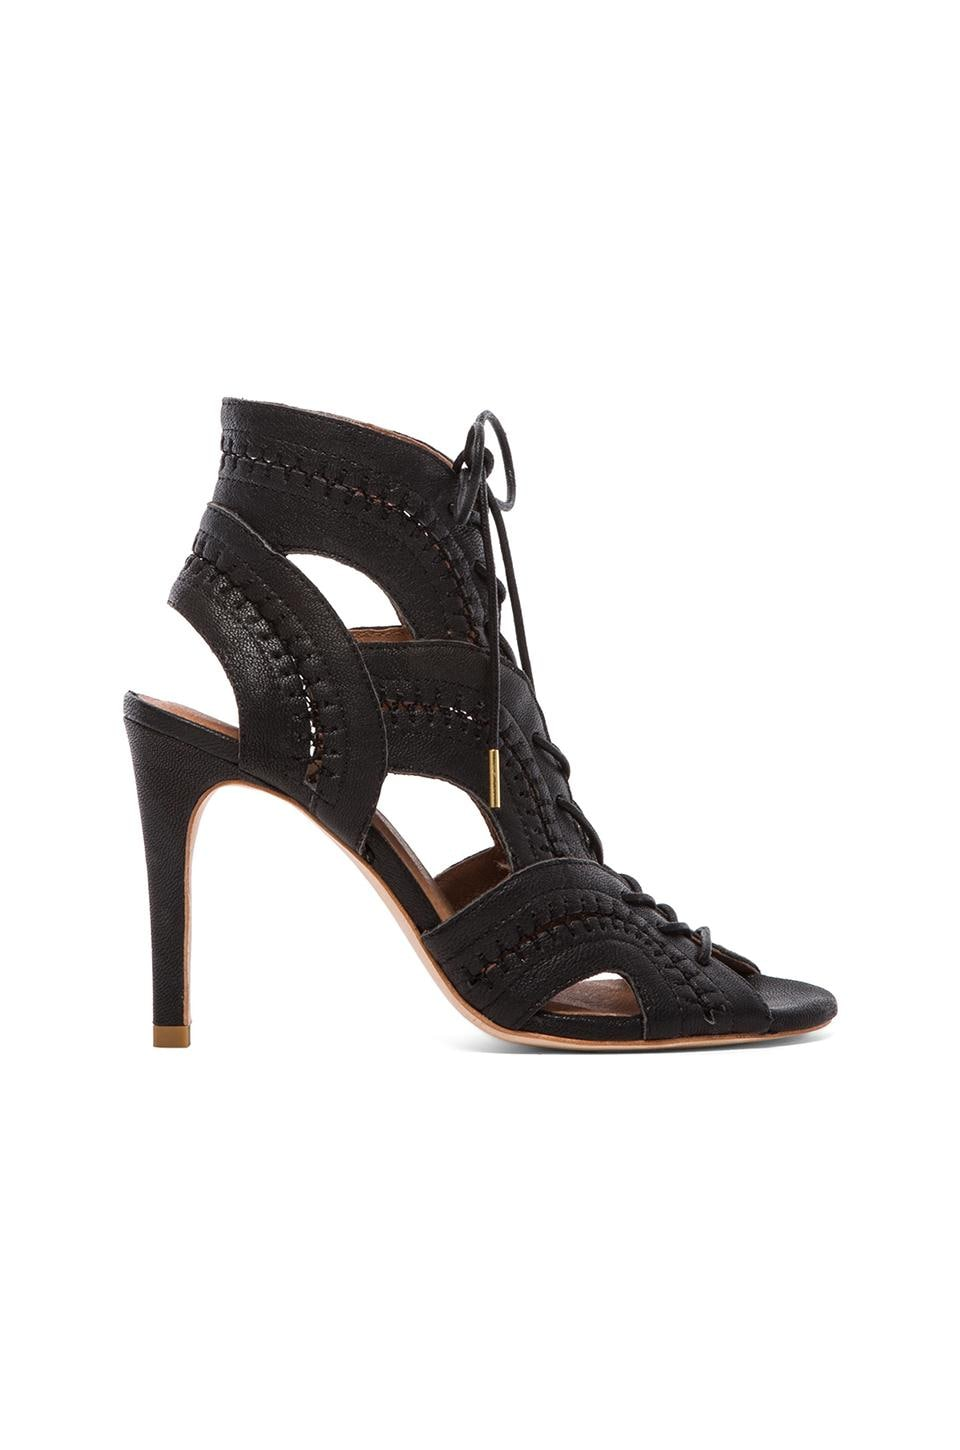 Joie Remy Pump in Black